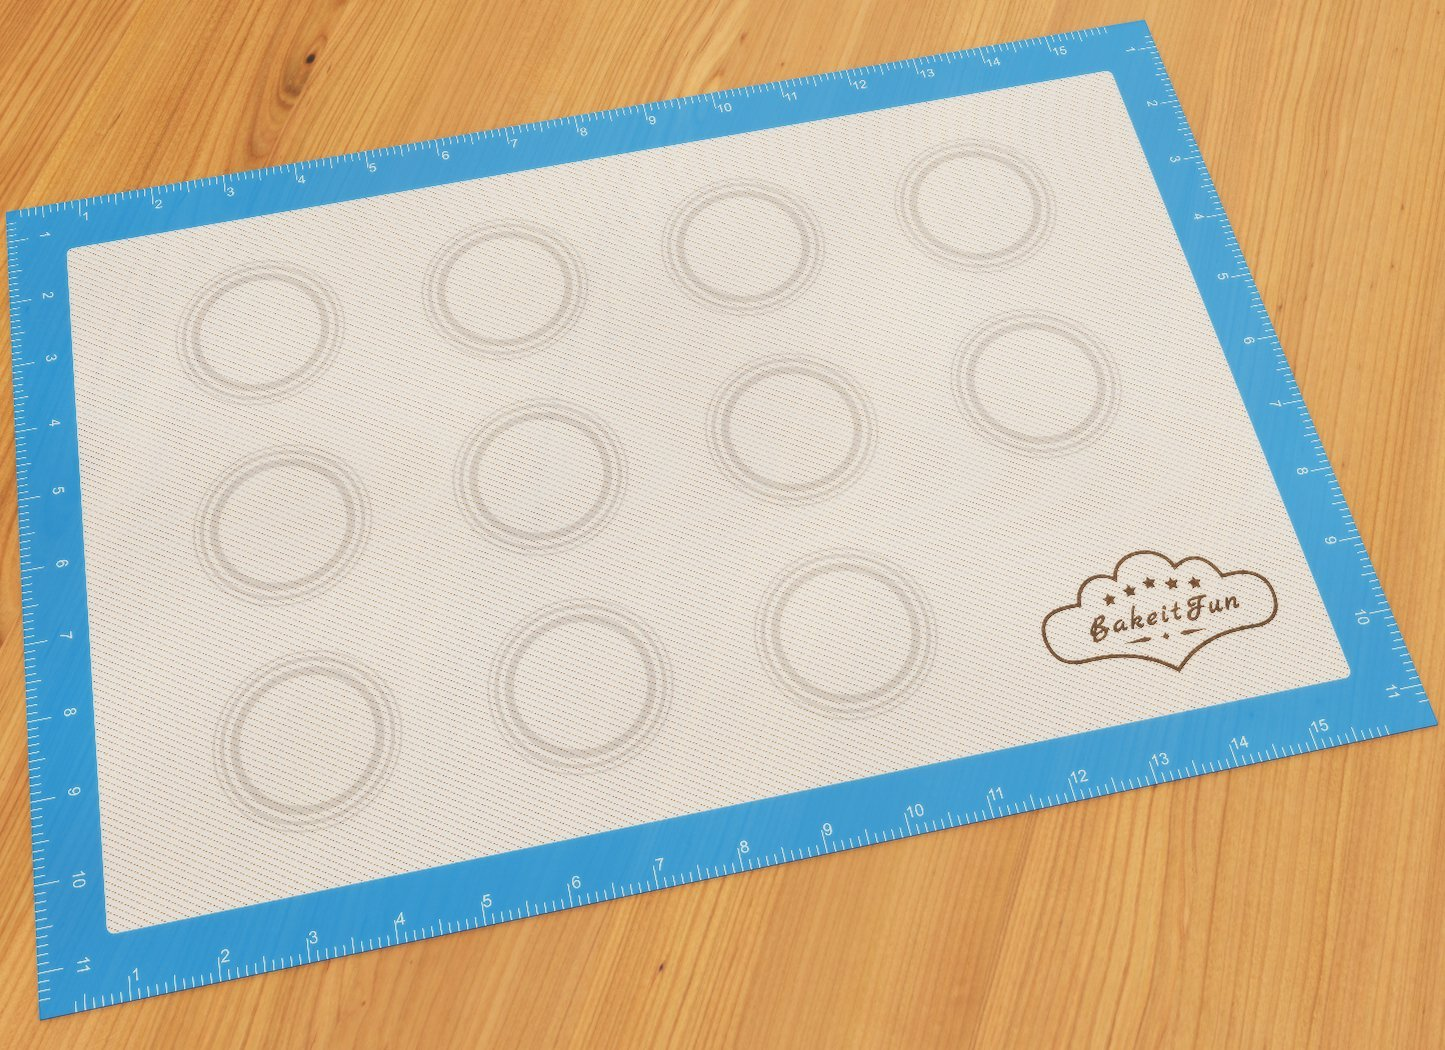 Bake it fun silicon baking mat